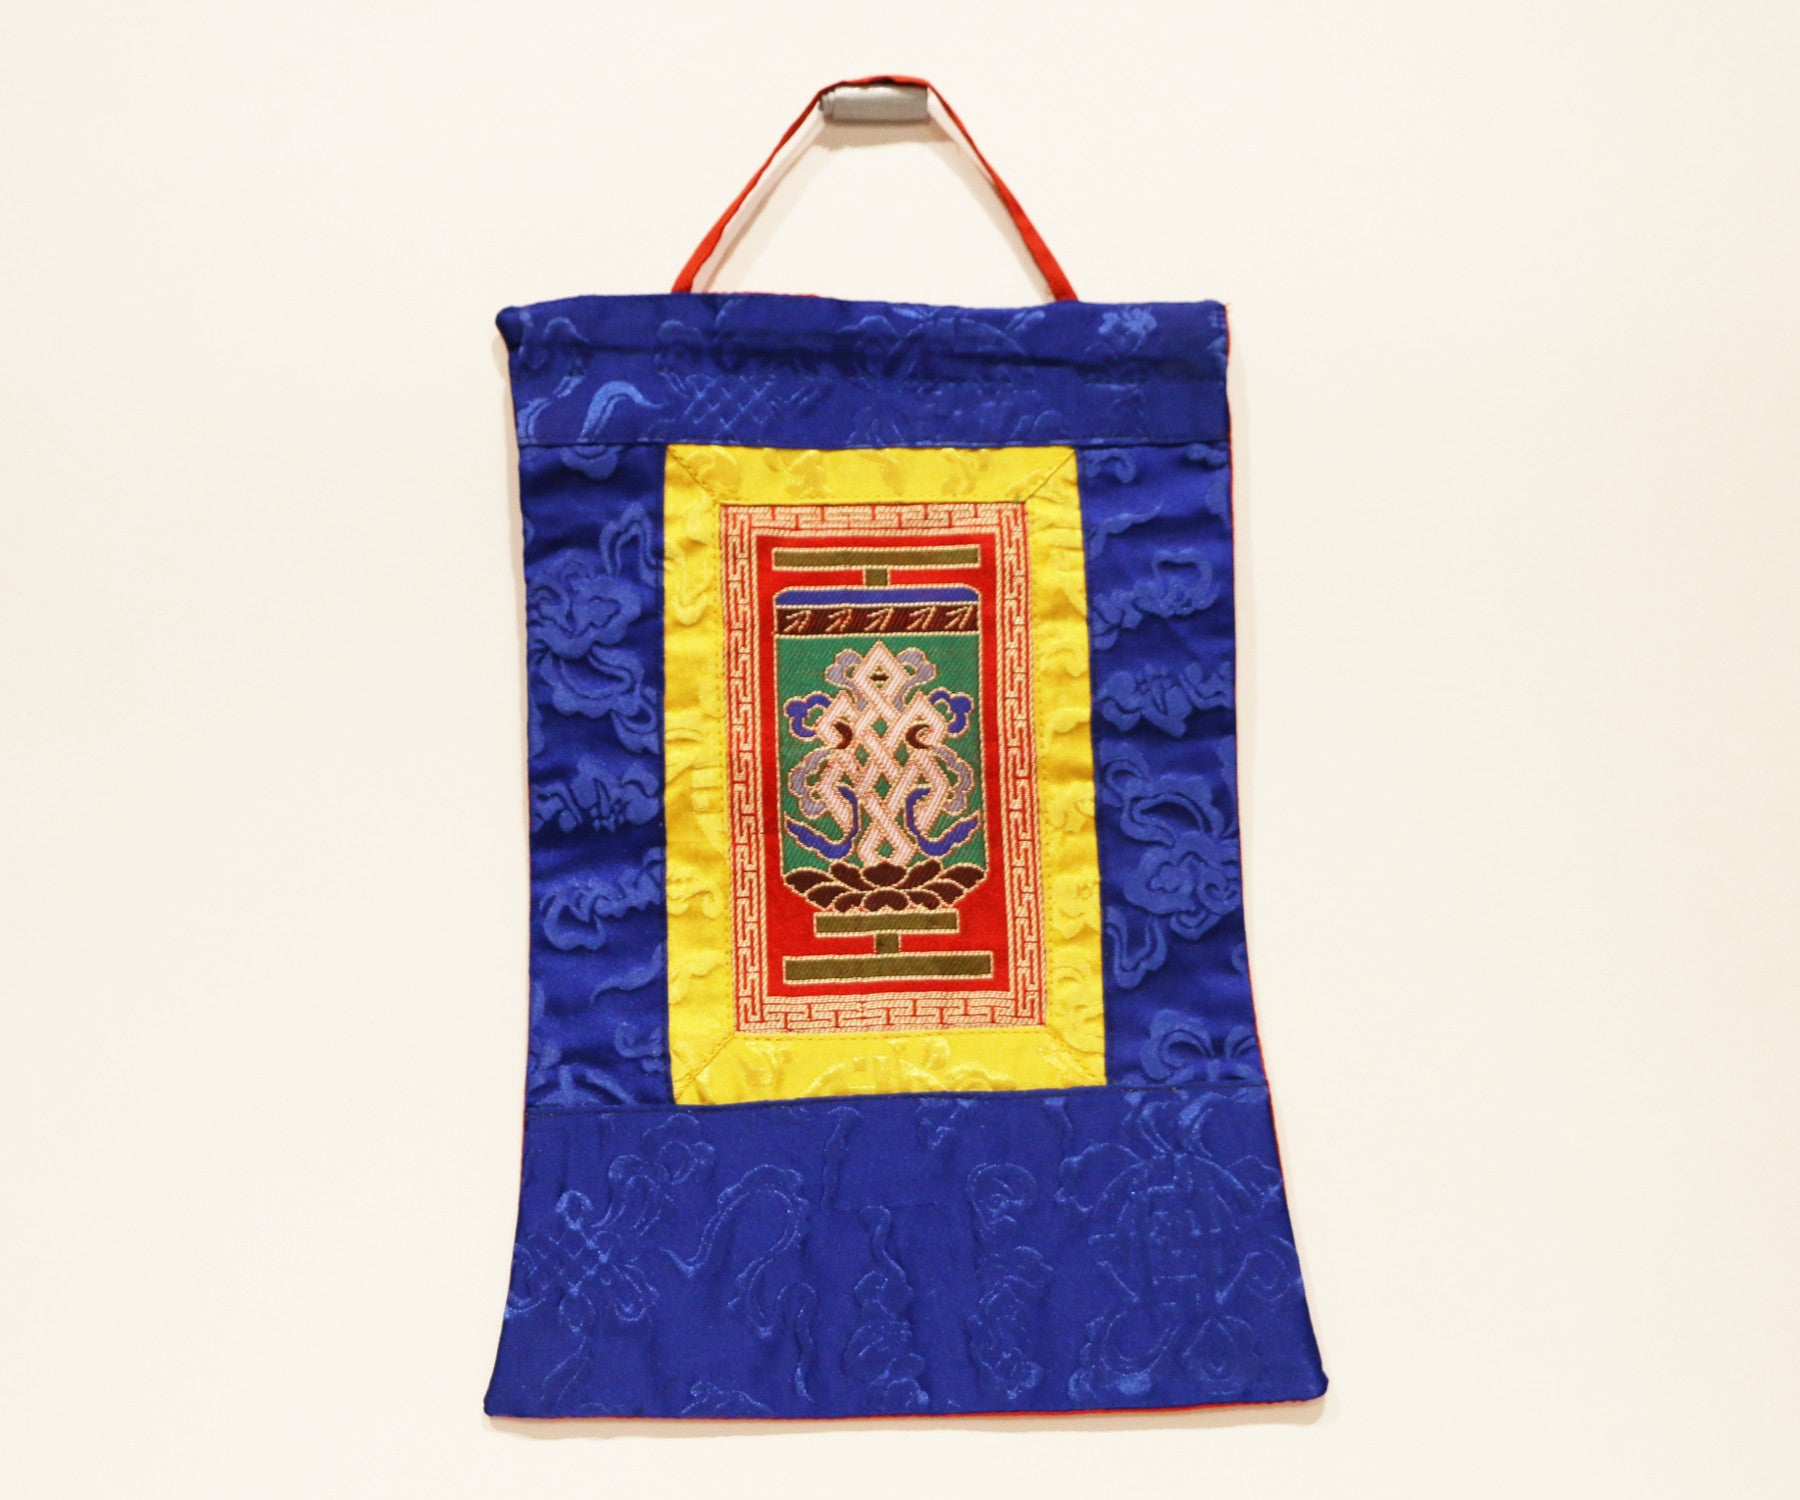 Mini Endless knot Thangka - Tibet Arts & Healing